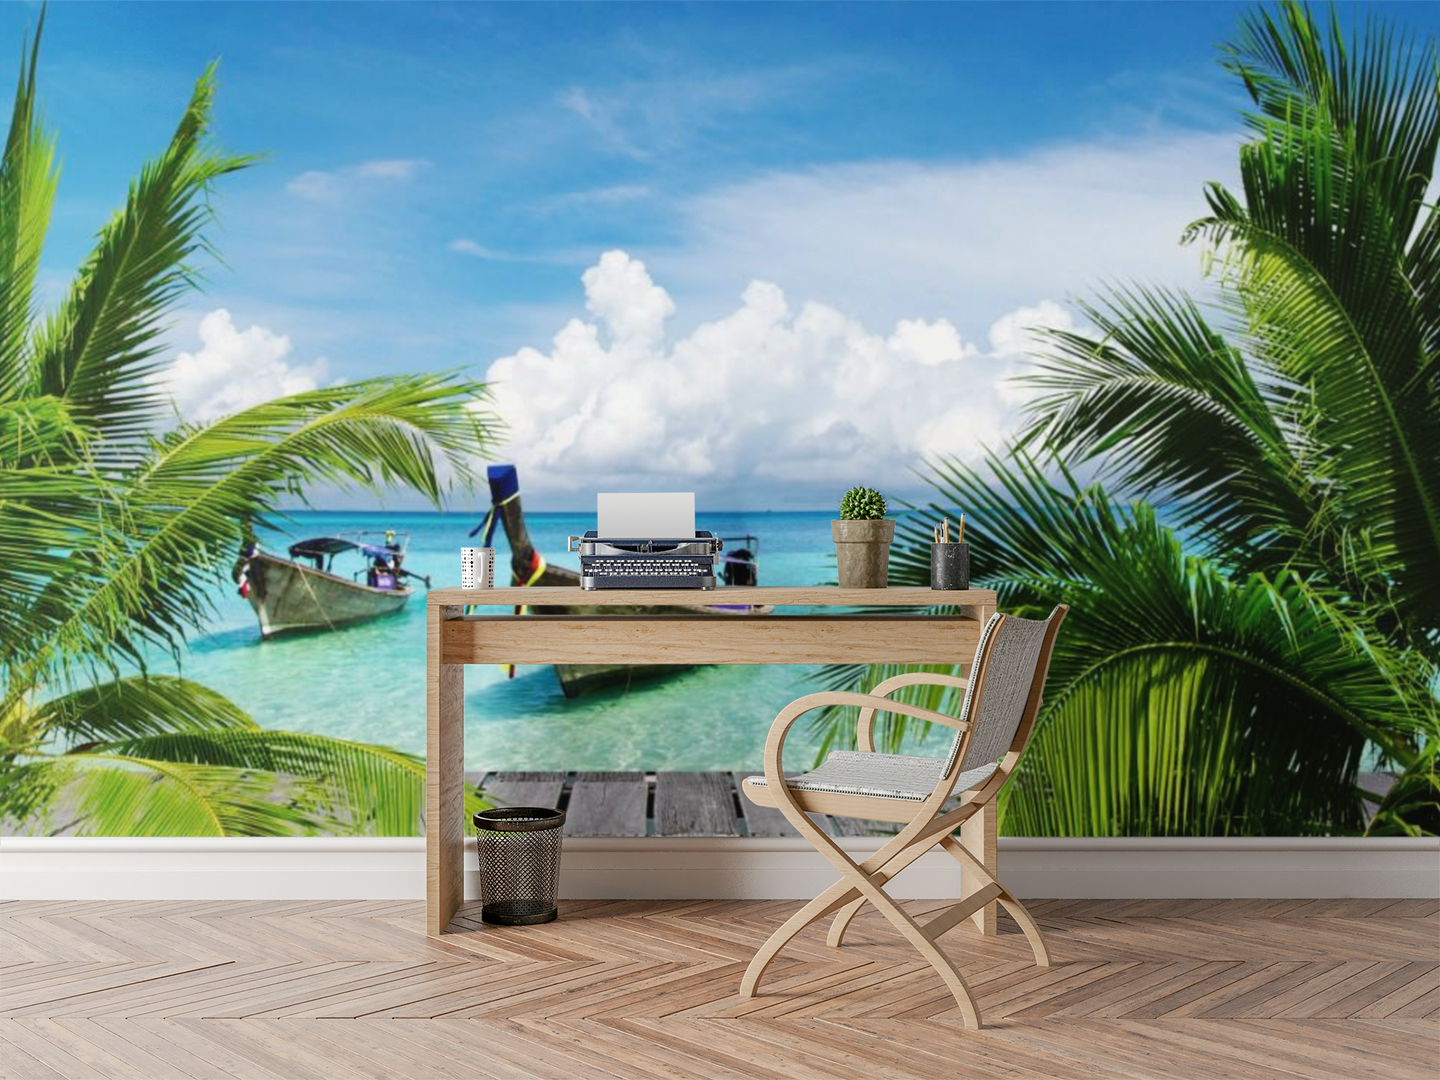 Boat With Palm Trees - 026 - Wall Murals Printing - wall art